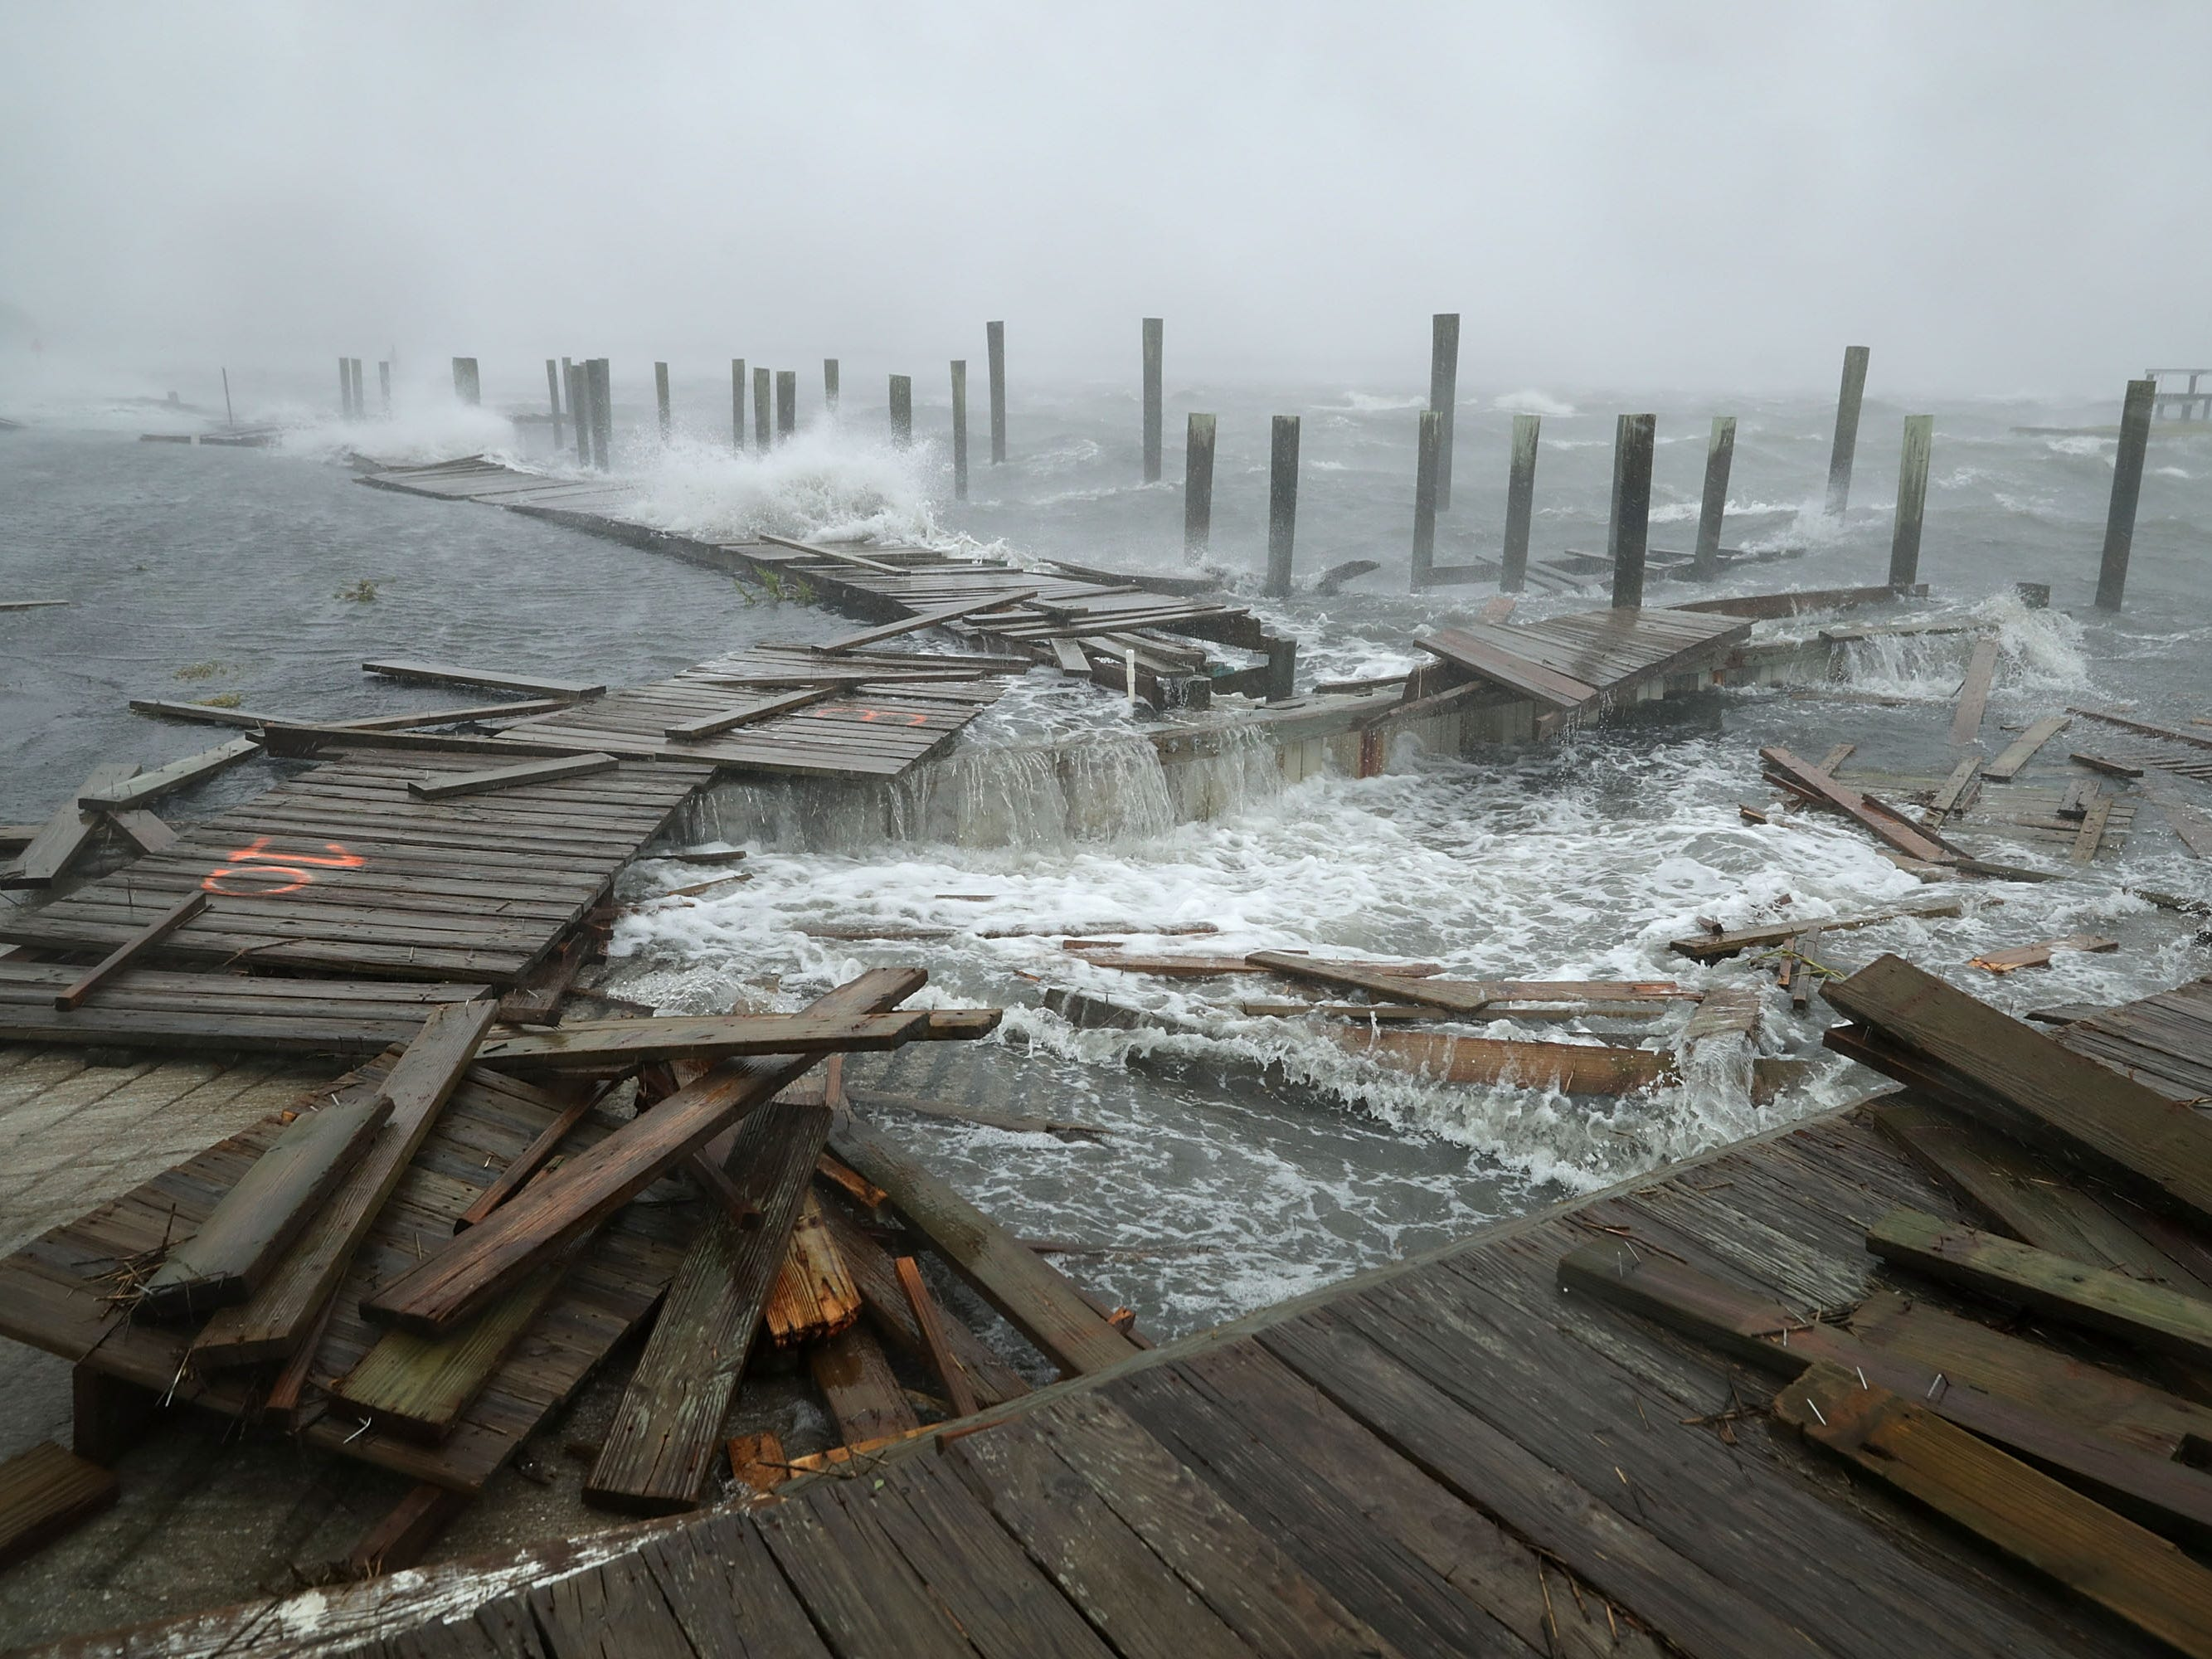 Portions of a boat dock and boardwalk are destroyed by powerful wind and waves as Hurricane Florence arrives Sept. 13, 2018, in Atlantic Beach, N.C.